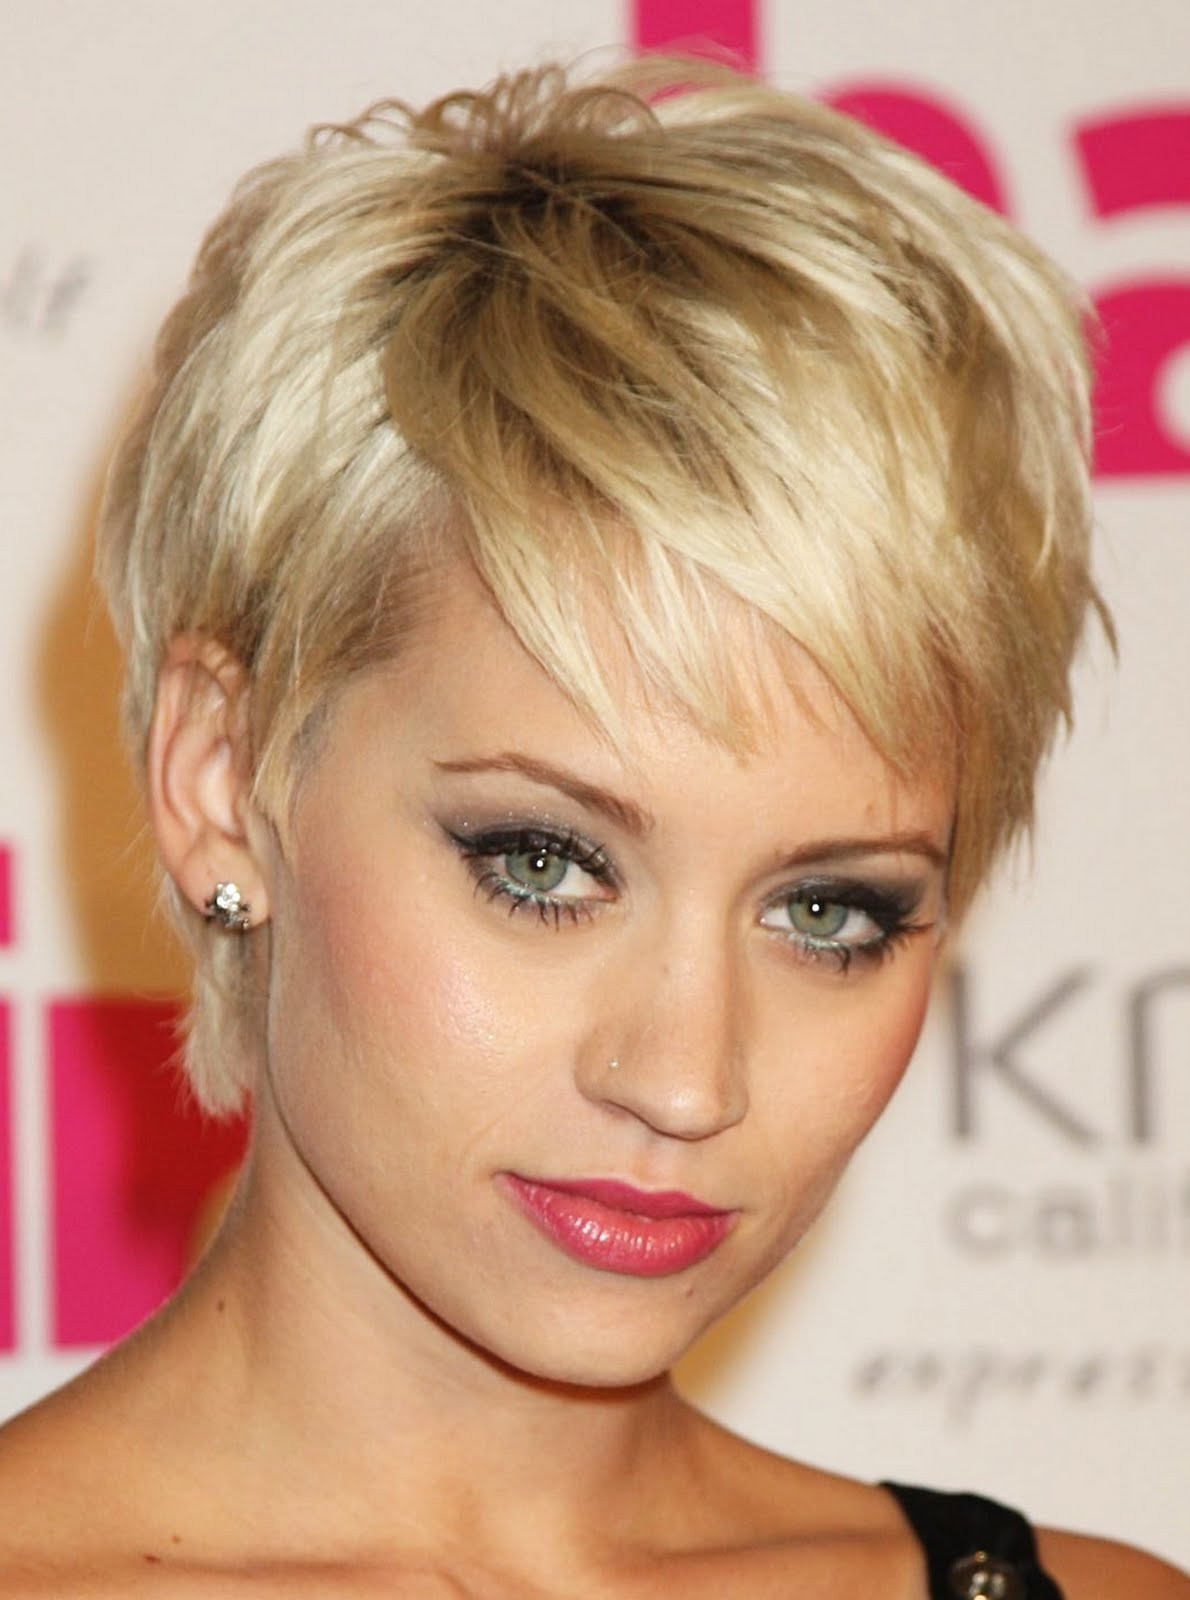 Best ideas about Hairstyles For Oval Faces Female . Save or Pin Best Oval Face Hairstyles For Women s The Xerxes Now.